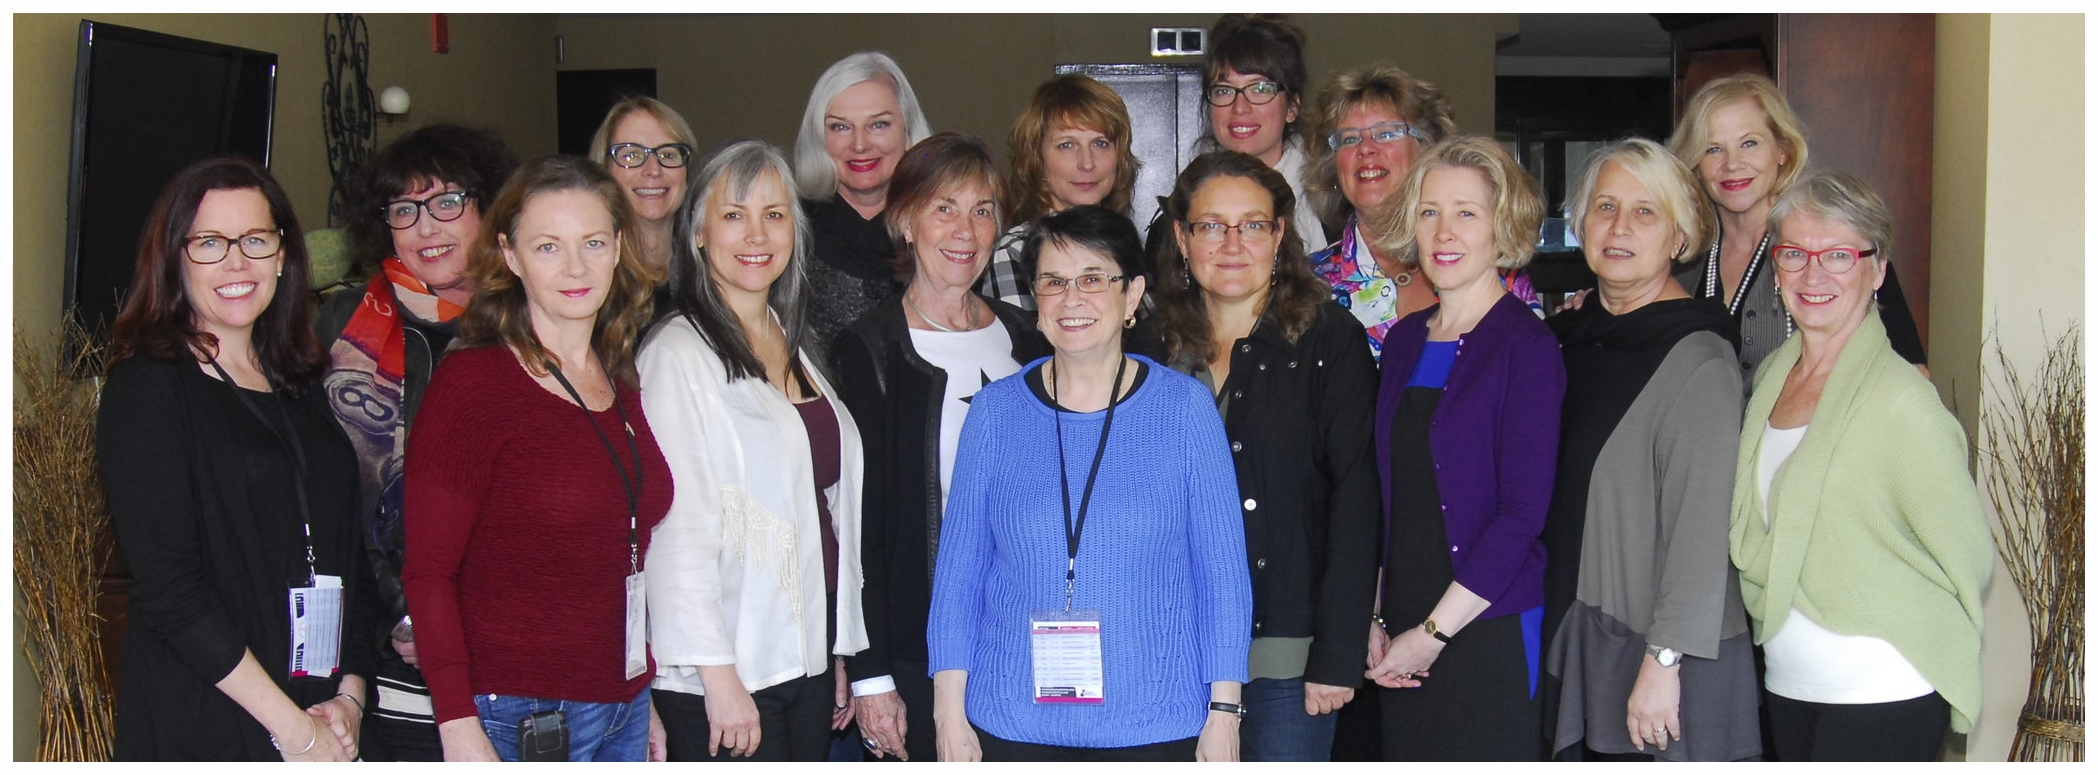 St. John's Summit on Women in Media  delegates